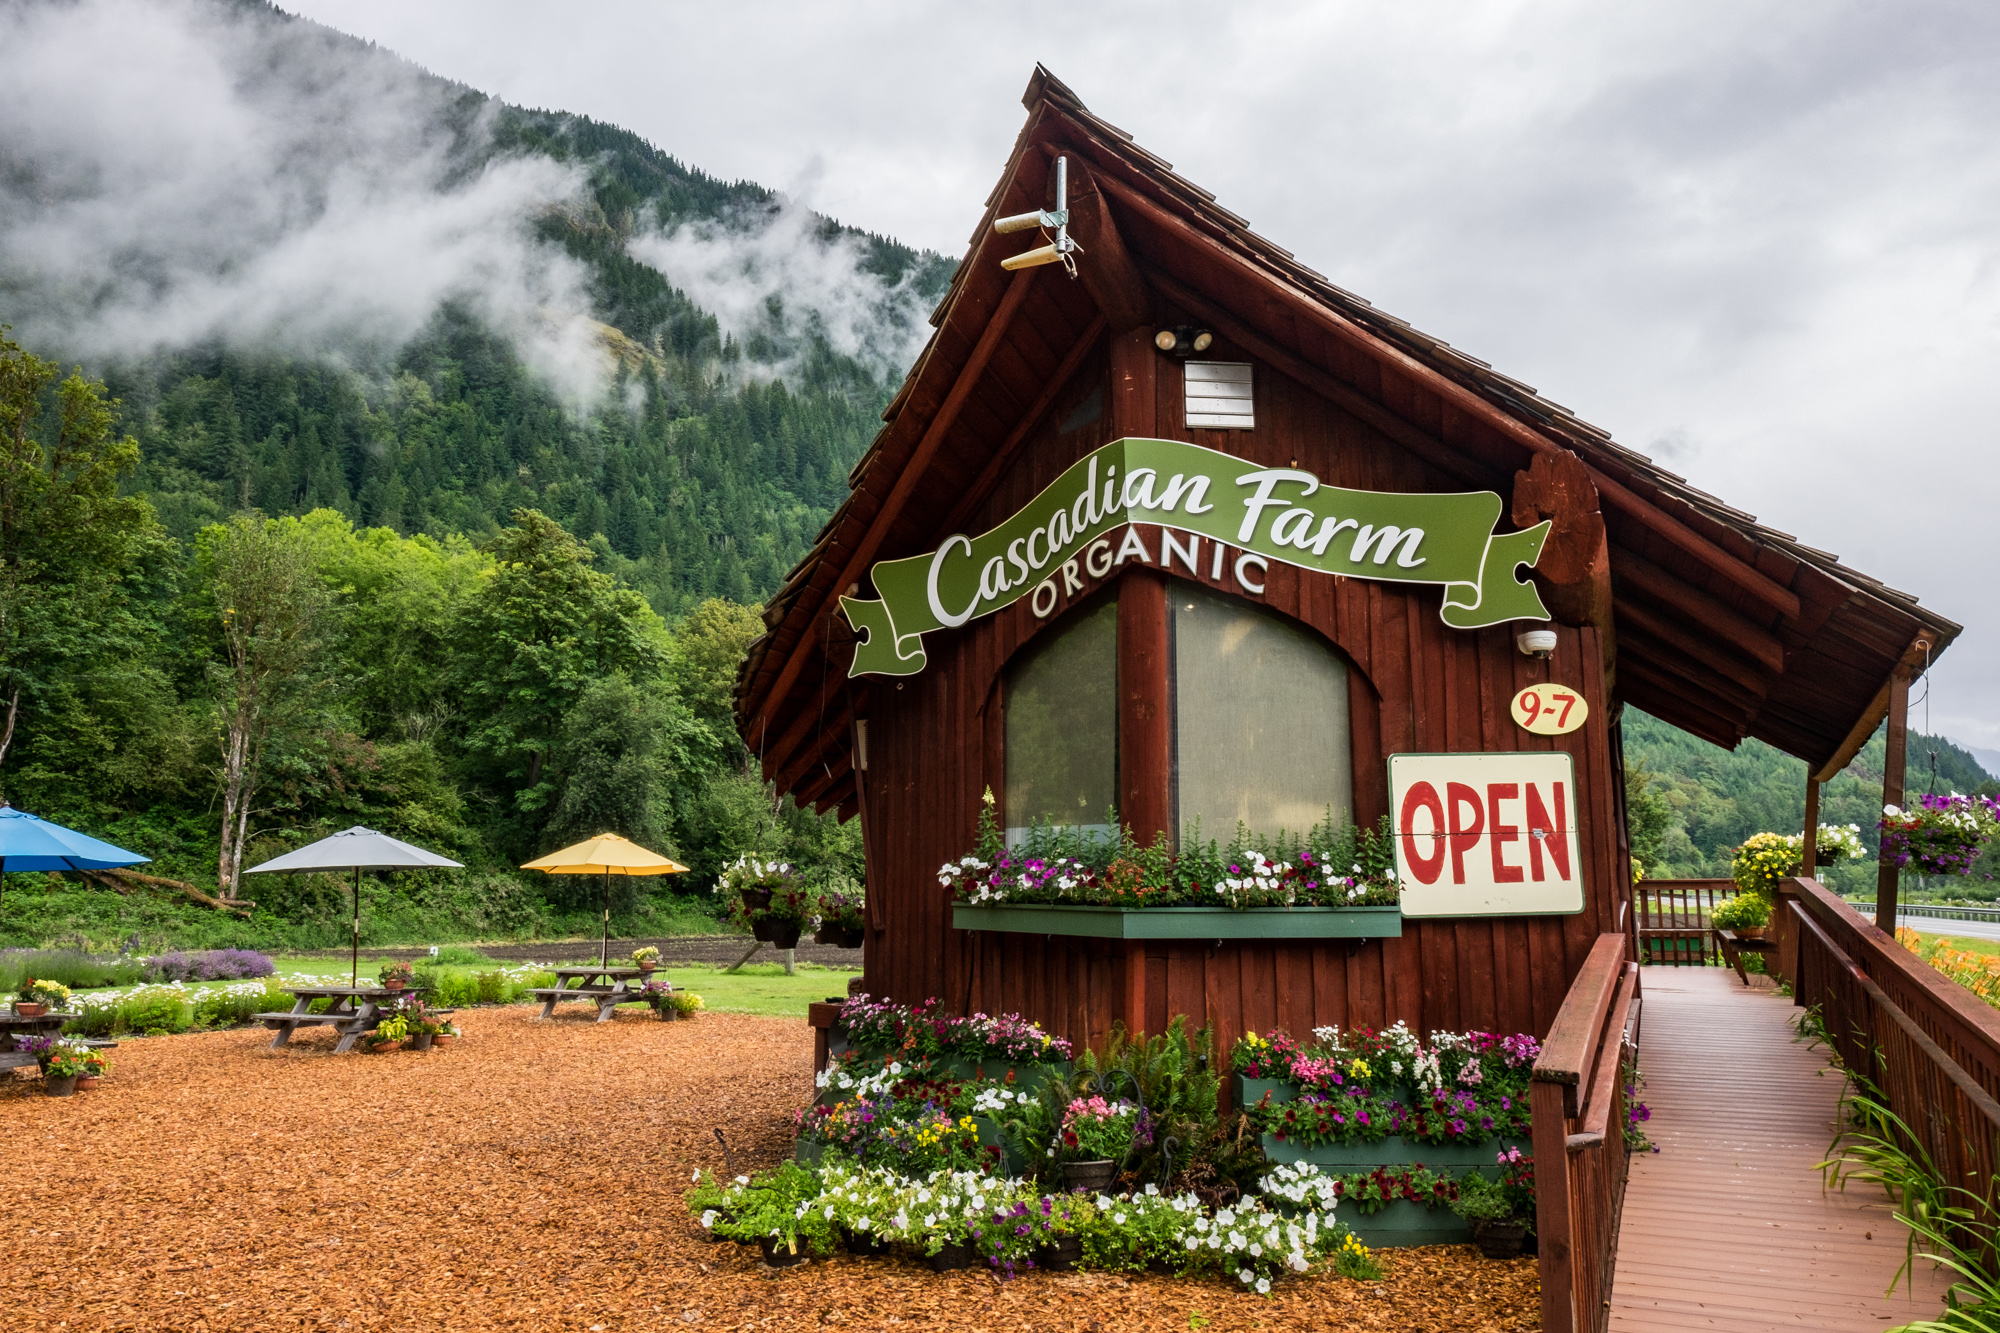 We stopped at Cascadian Farms for some fresh fruits and ice cream.